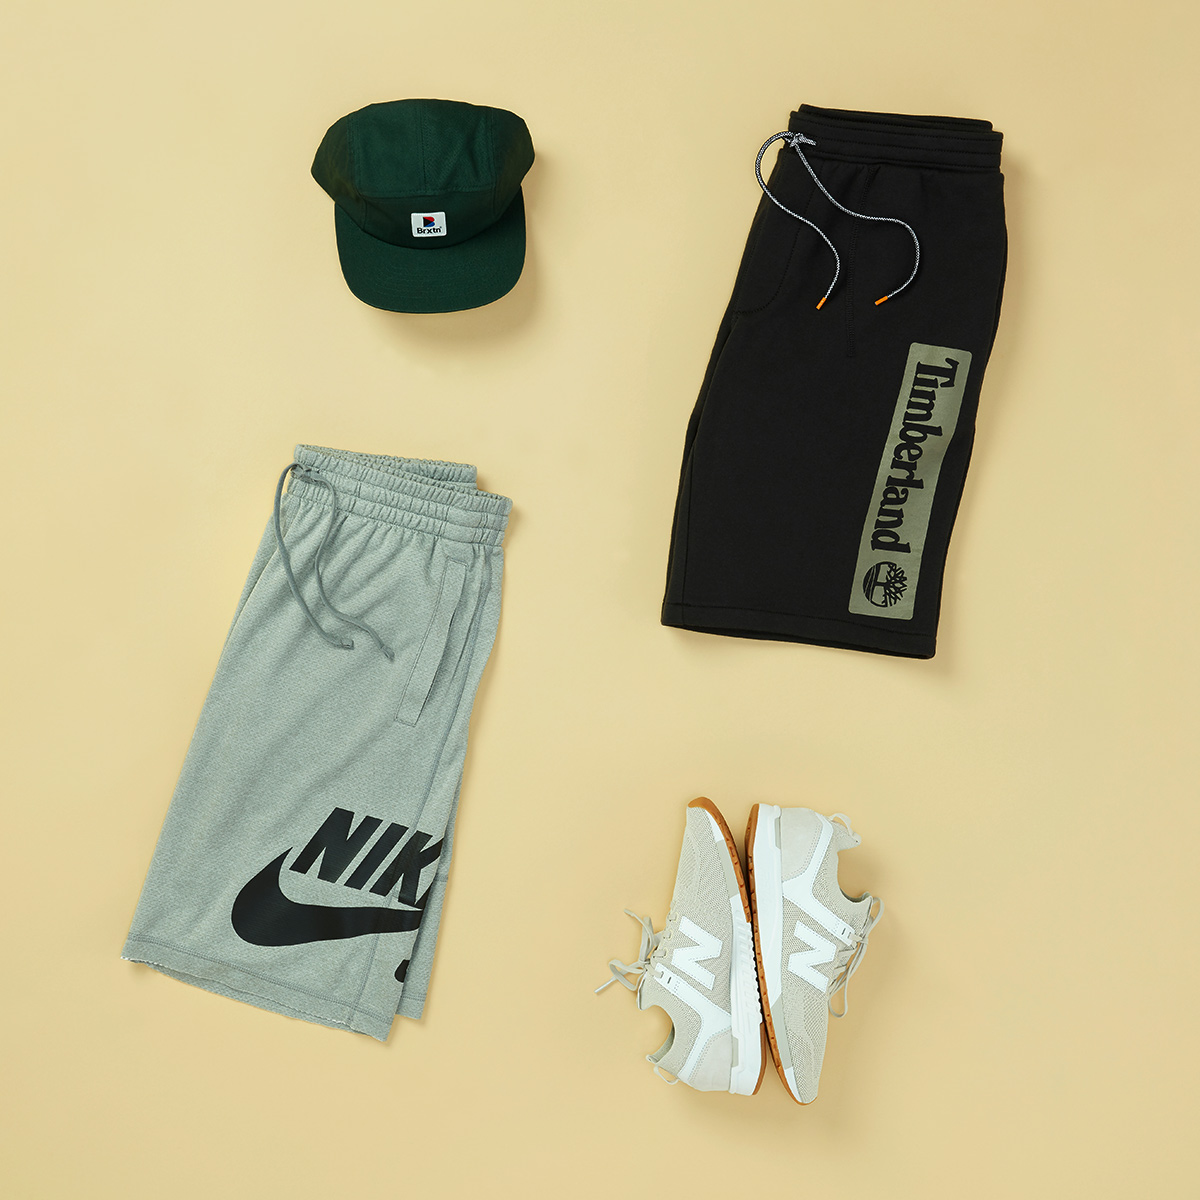 Four articles of men's clothing featuring logos - a hat, Timberland shorts, Nike shorts, and Nike sneakers - laid flat on a light yellow background.